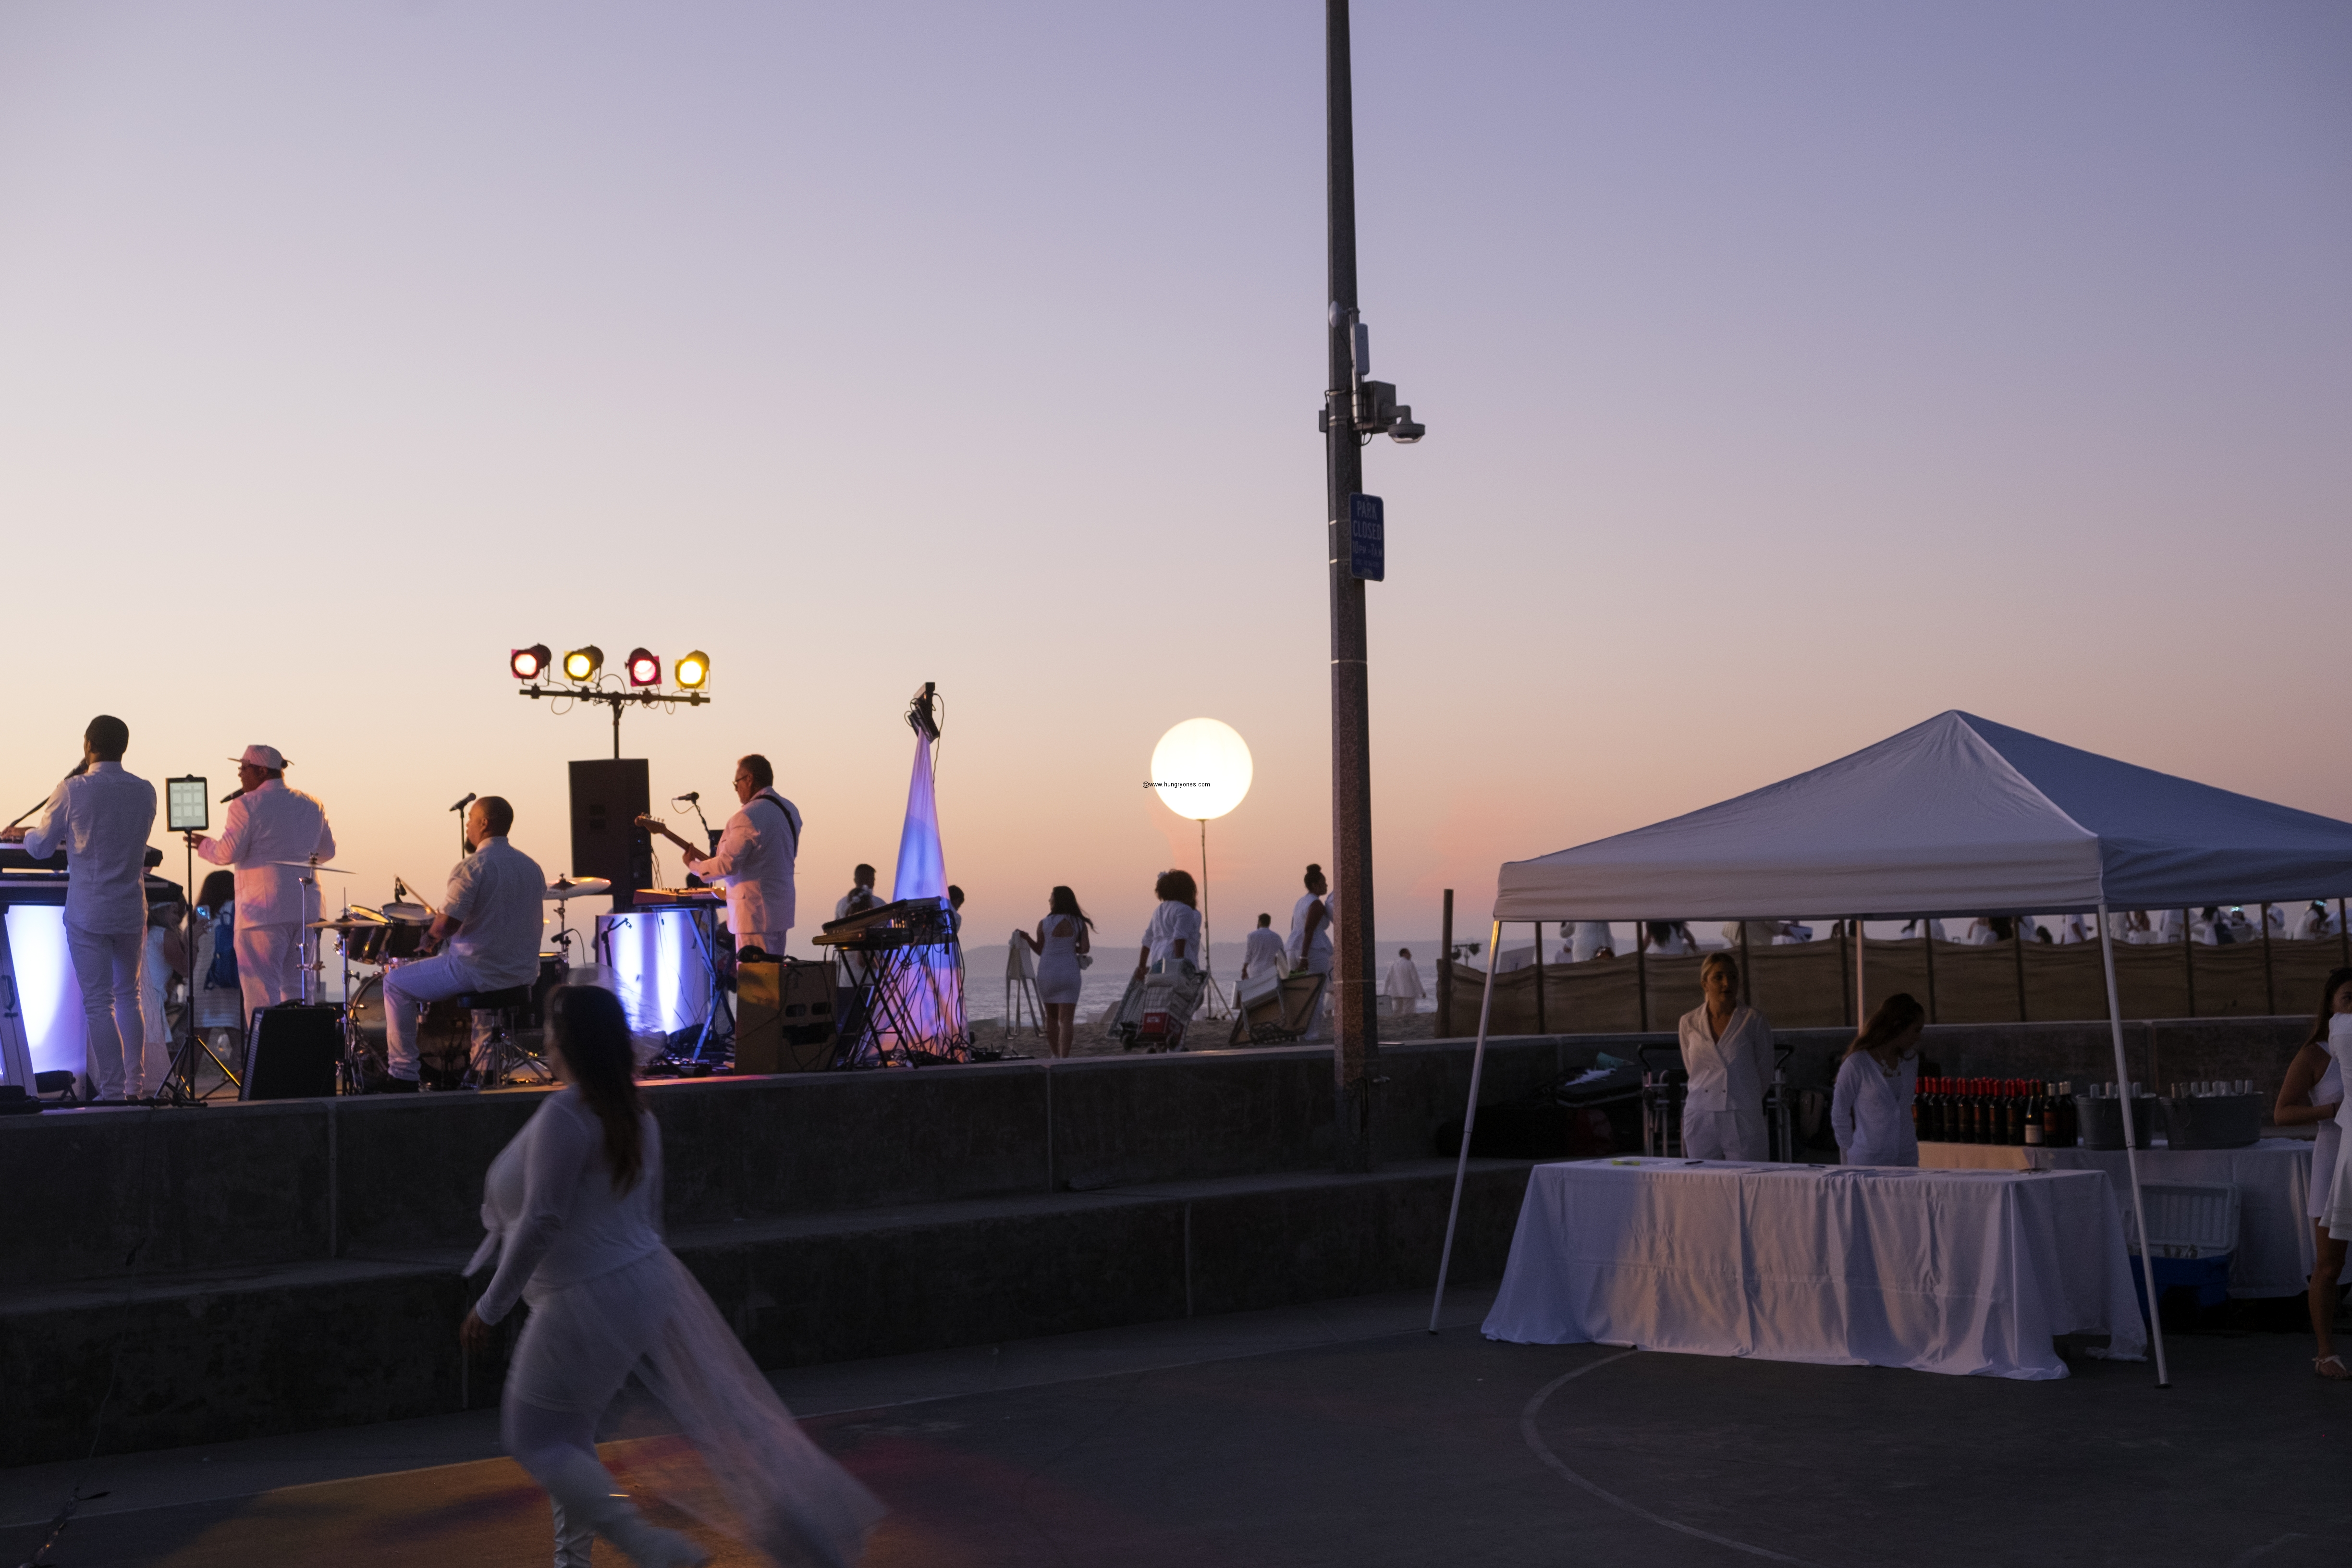 le-diner-en-blanc-and-apothic-wine-all-white-beach-event-20163178